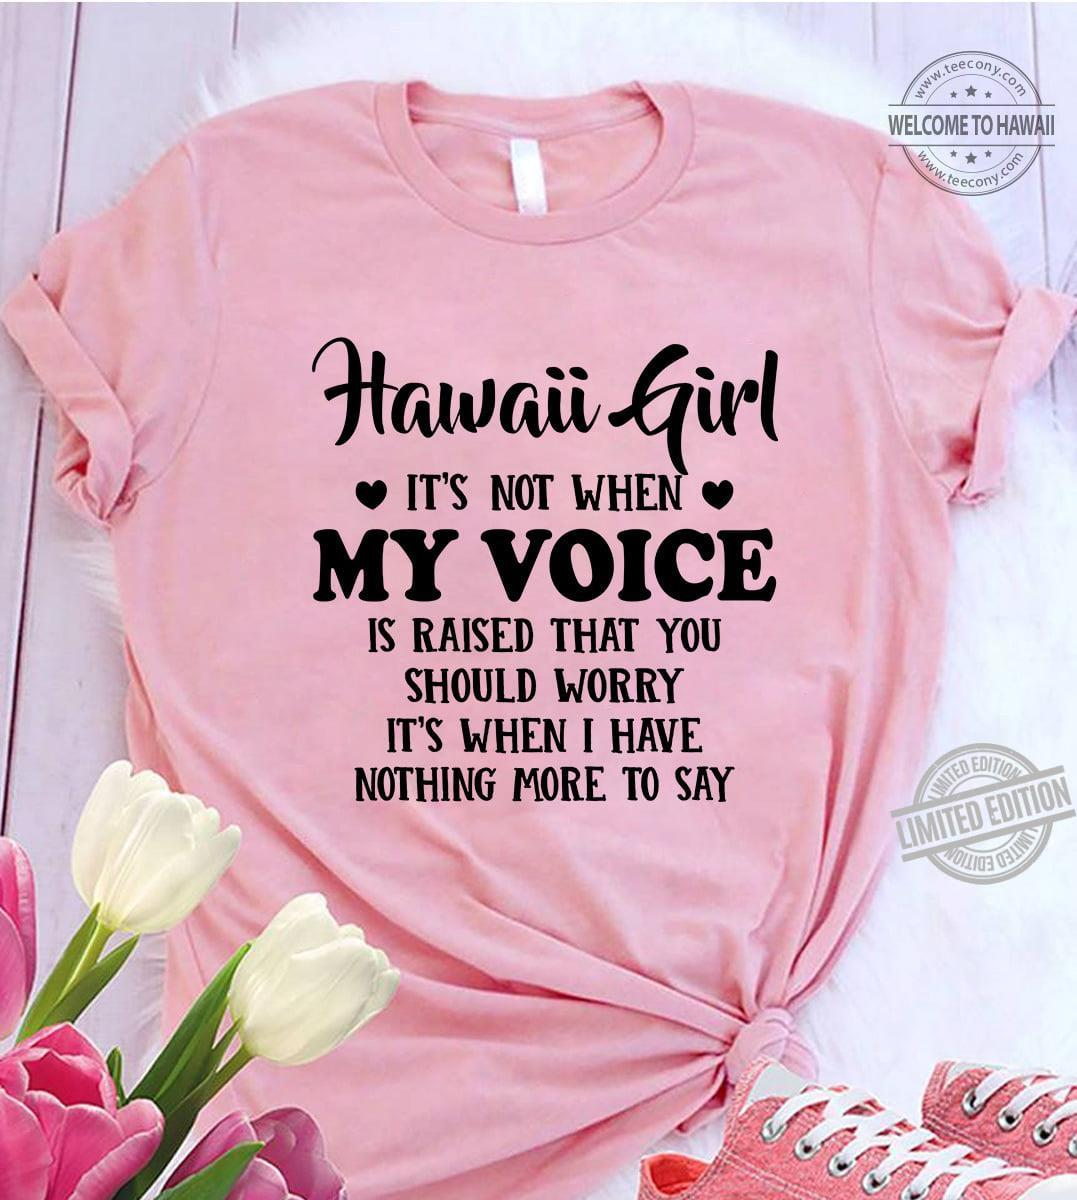 Hawaii Girl It's Not When My Voice Is Raised That You Should Worry It's When I Have Nothing More To Say Shirt